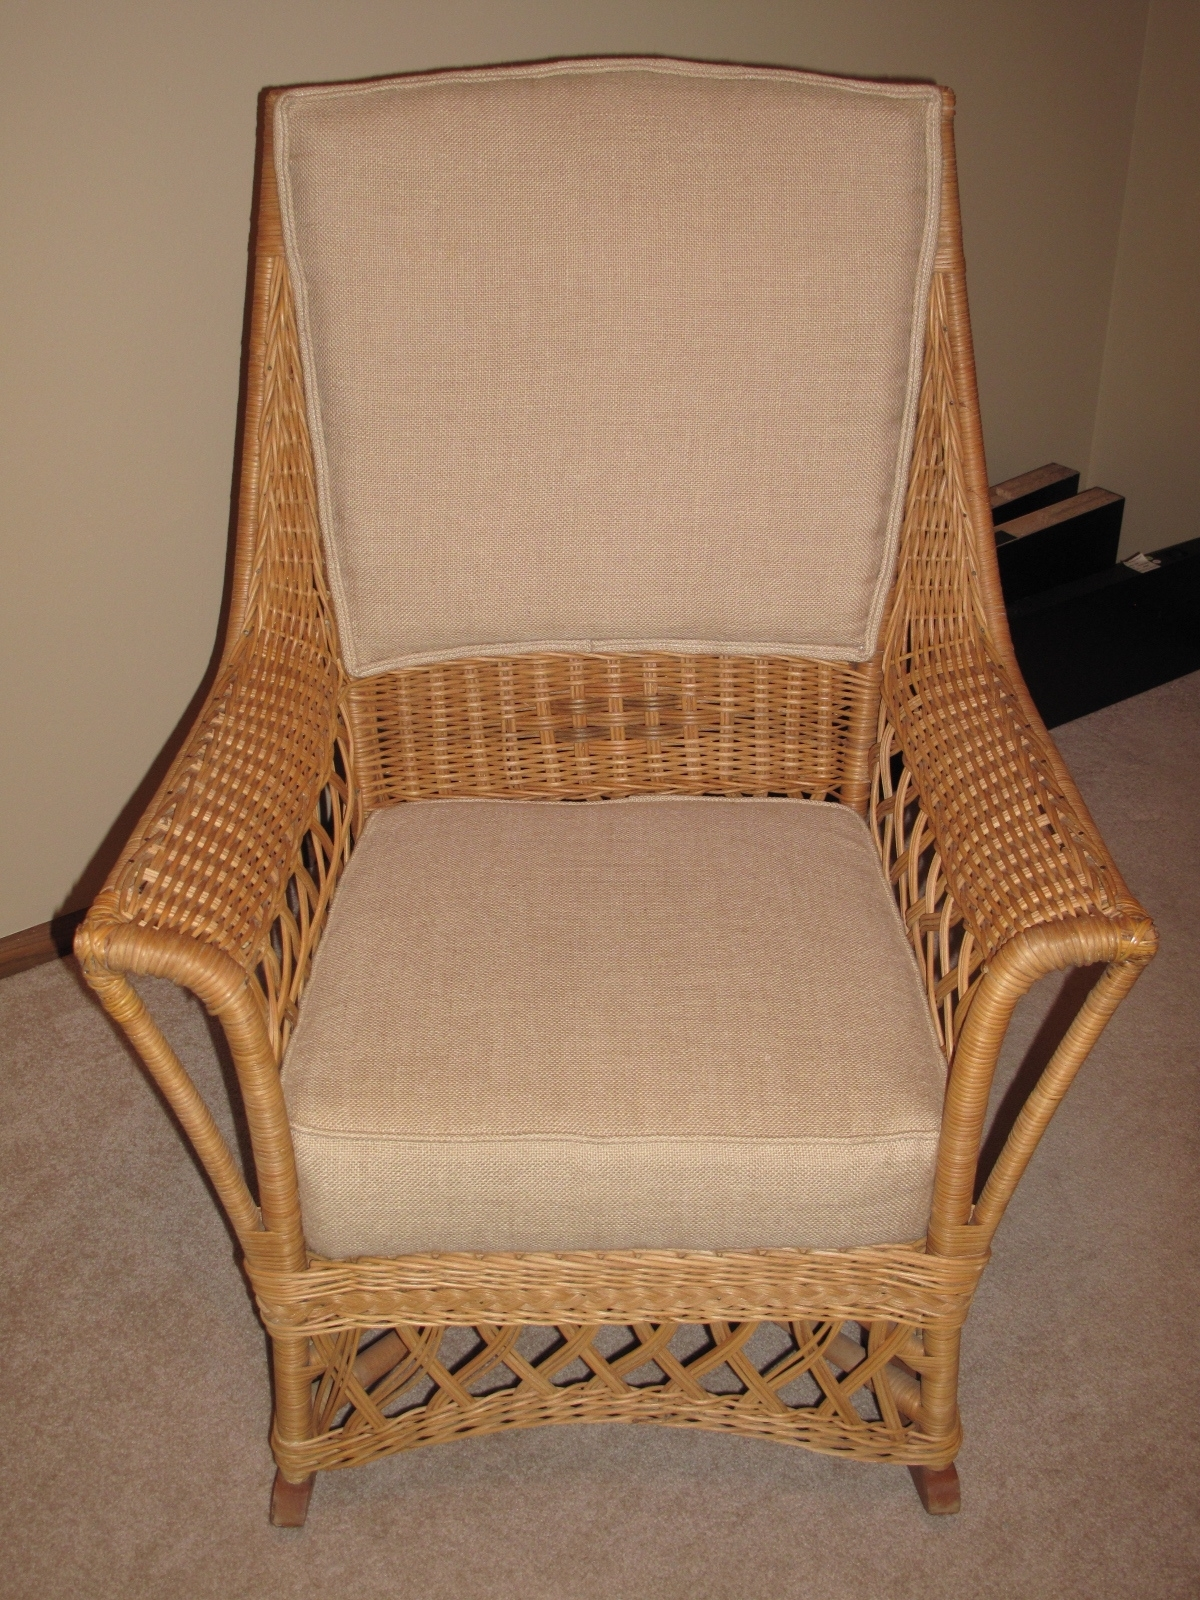 Best And Newest Furniture: Ypsilanti Furniture Company Wicker Rocking Chair Antique Inside Antique Wicker Rocking Chairs (View 5 of 15)